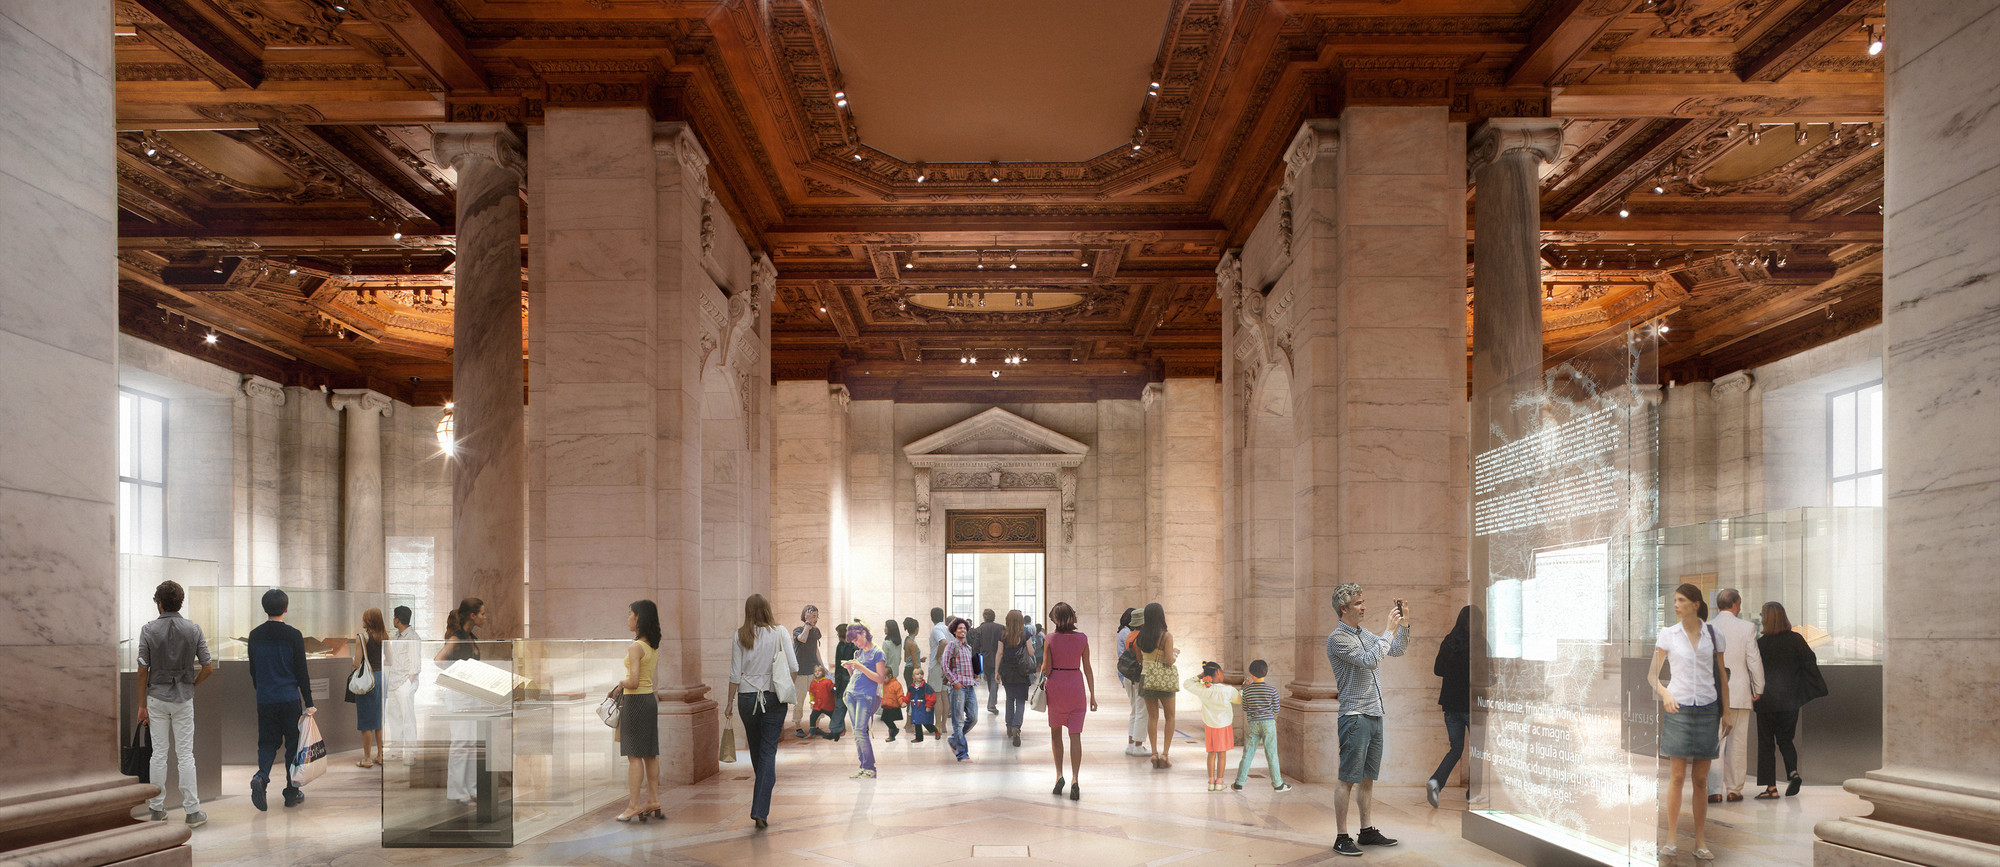 Foster + Partners' New York Public Library Redesign in State of Limbo, © dbox, Courtesy of Foster + Partners